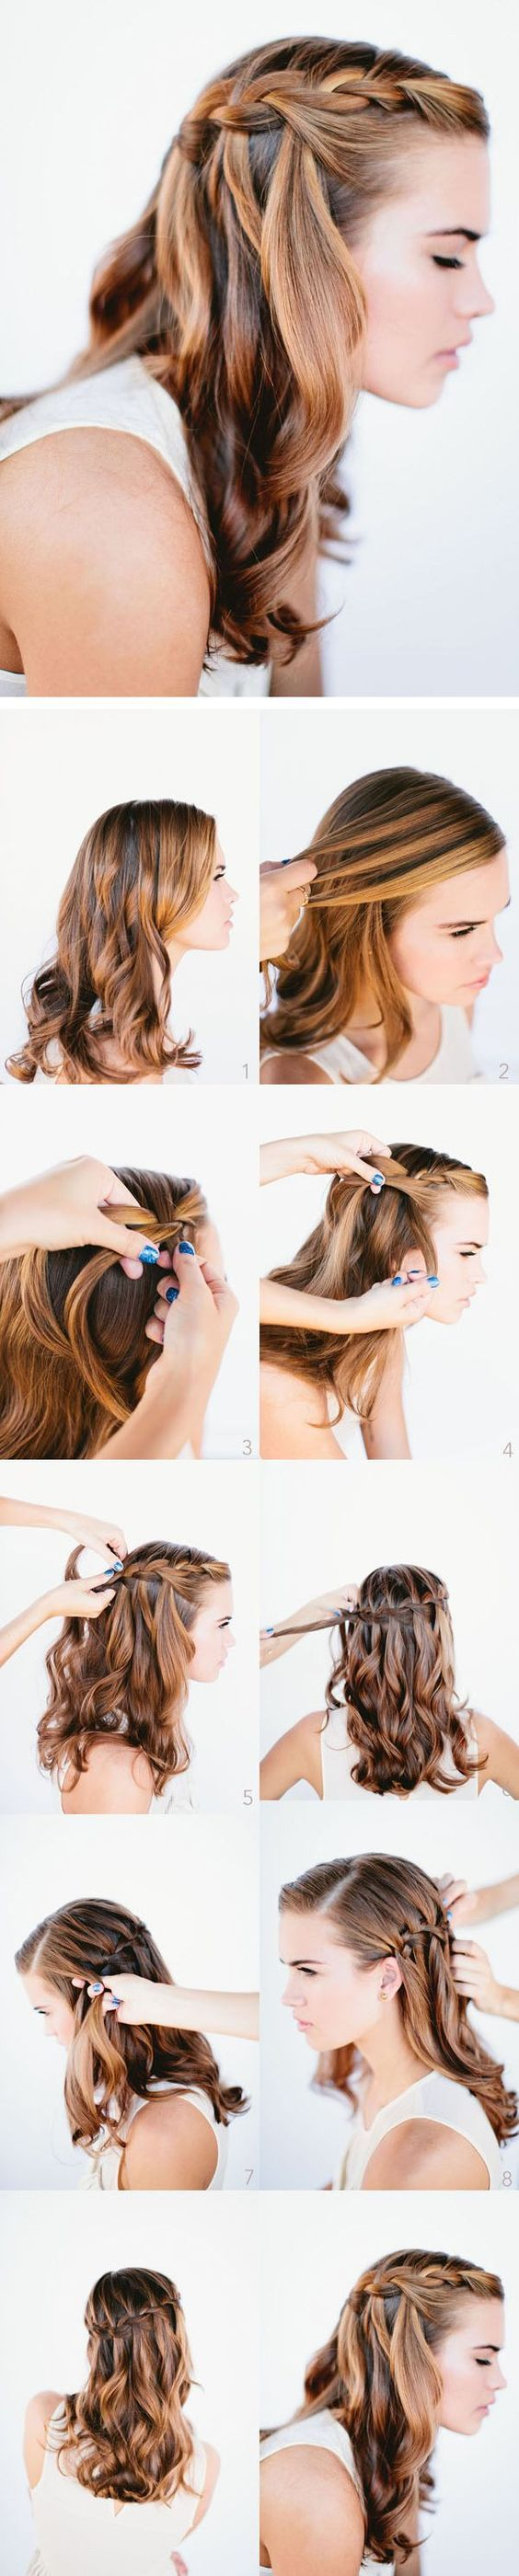 Follow This Step By Step Tutorial To Get The Perfect waterfall braid! - Page 4 of 7 - Where Fashion Meets Passion